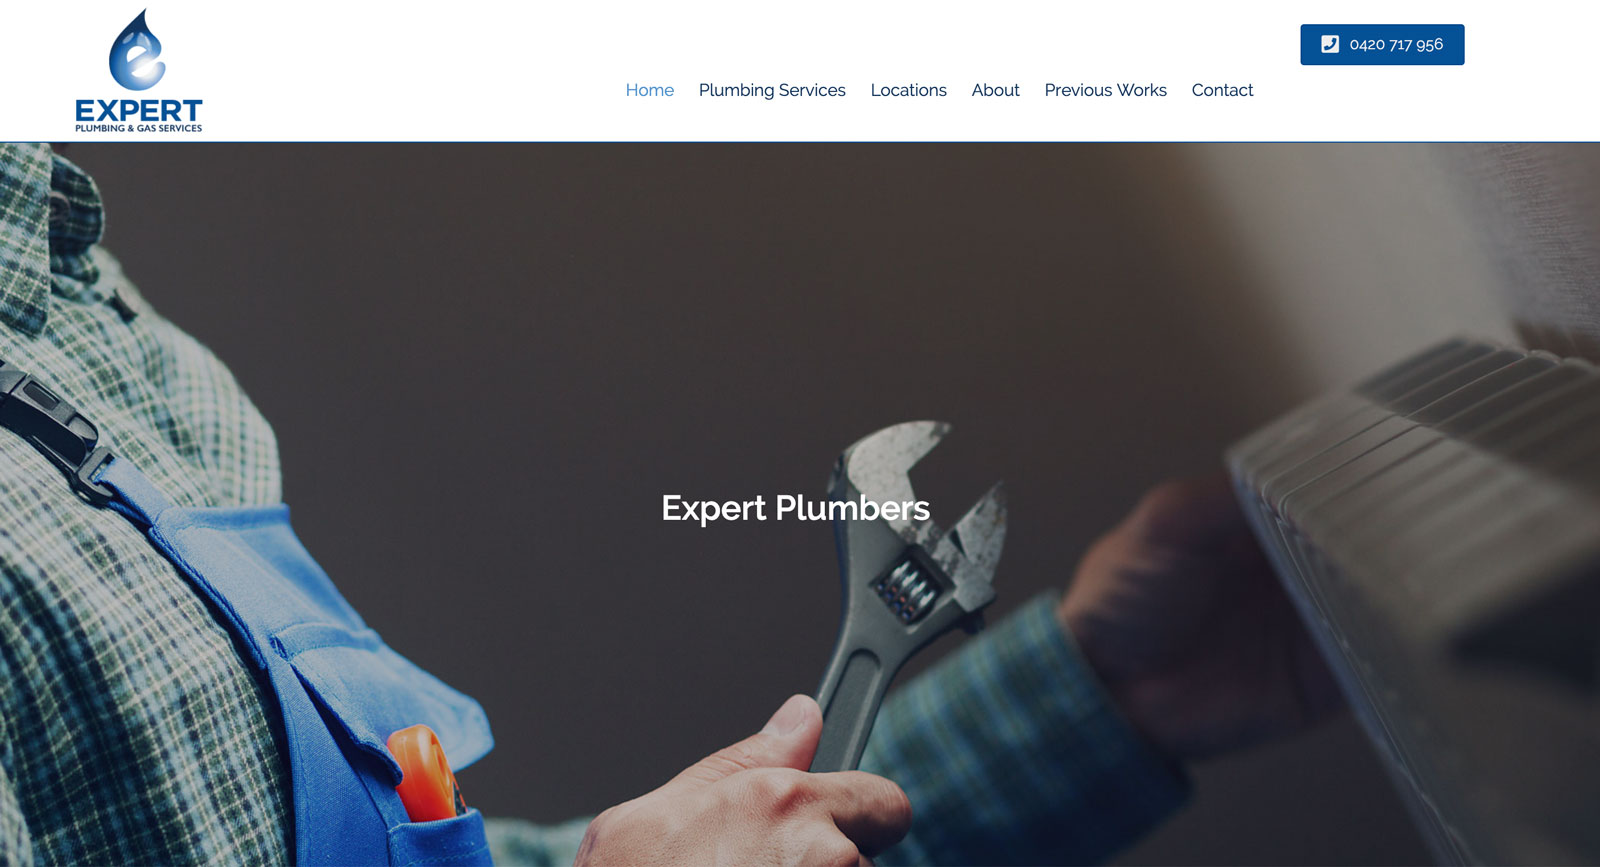 Expert-Plumbing-and-Gas-Services-Home